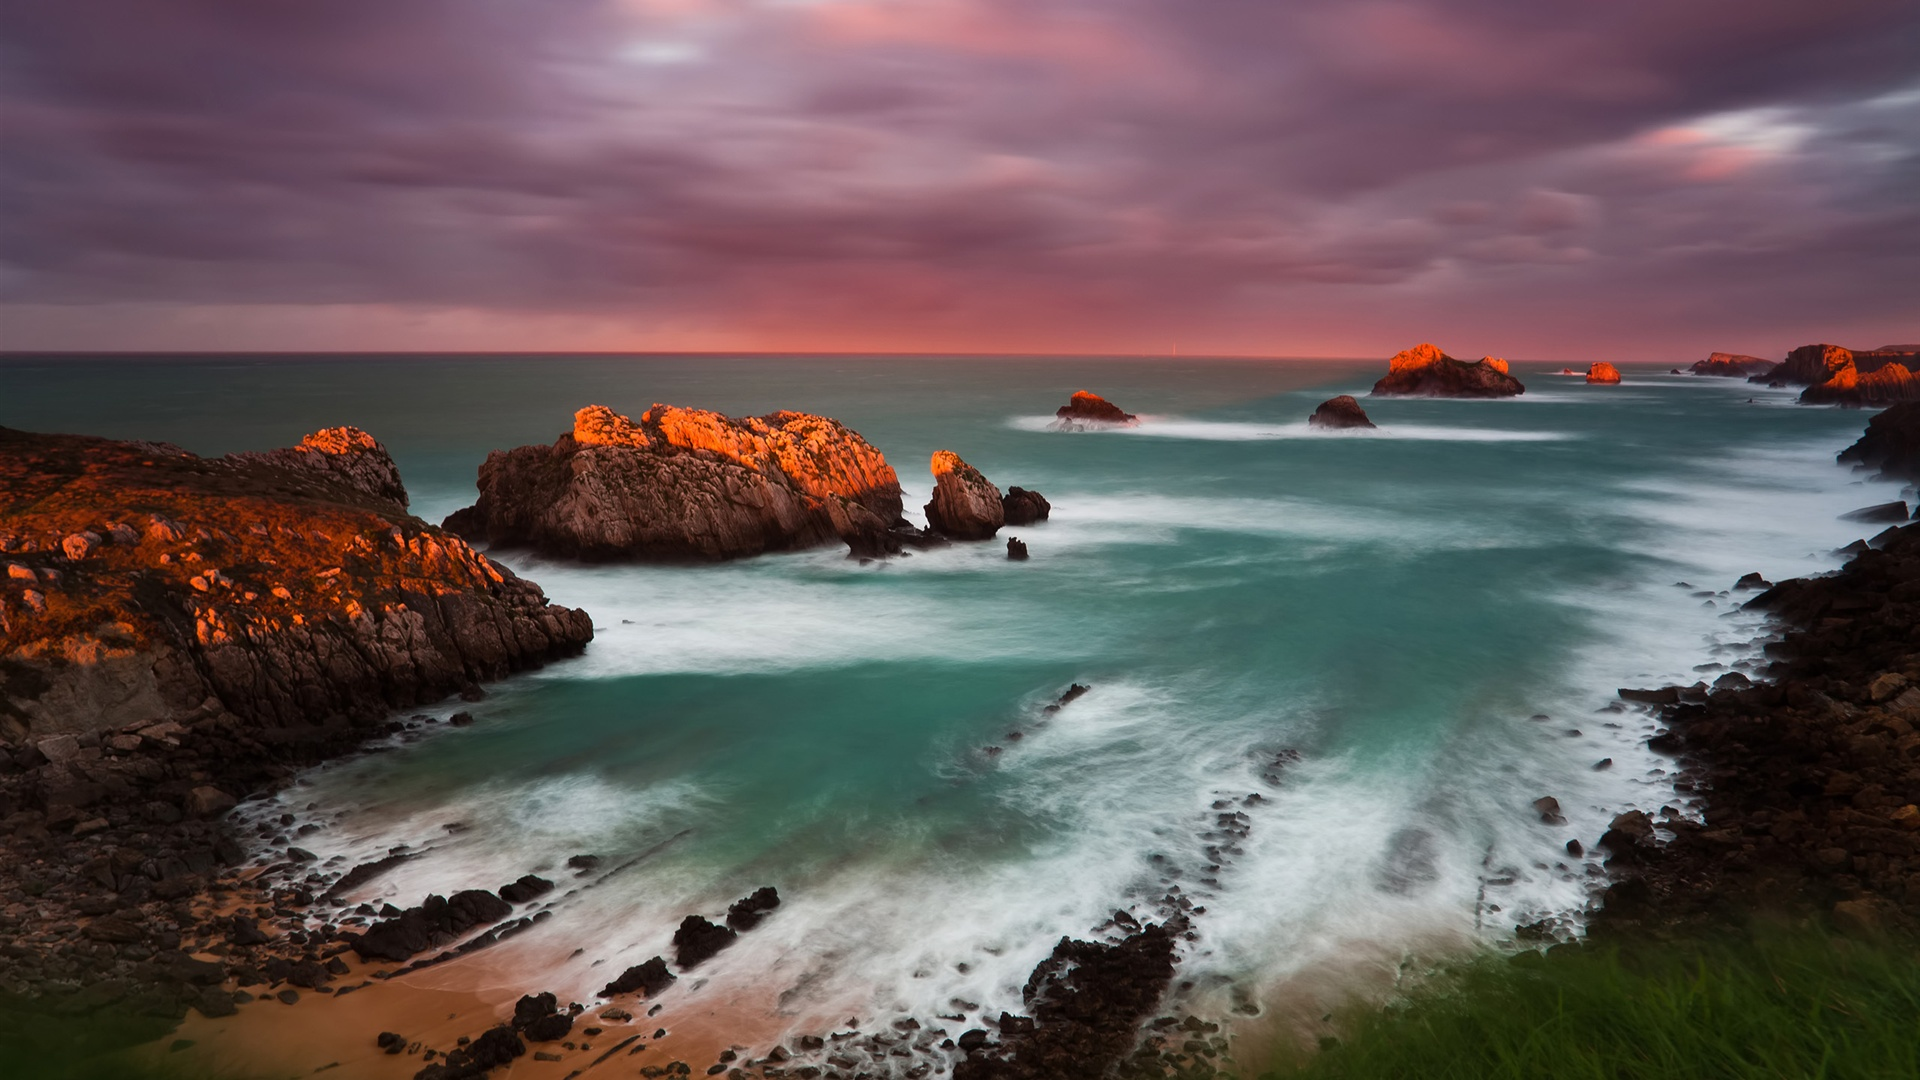 Spain Cantabria sunset wallpaper - 1920x1080